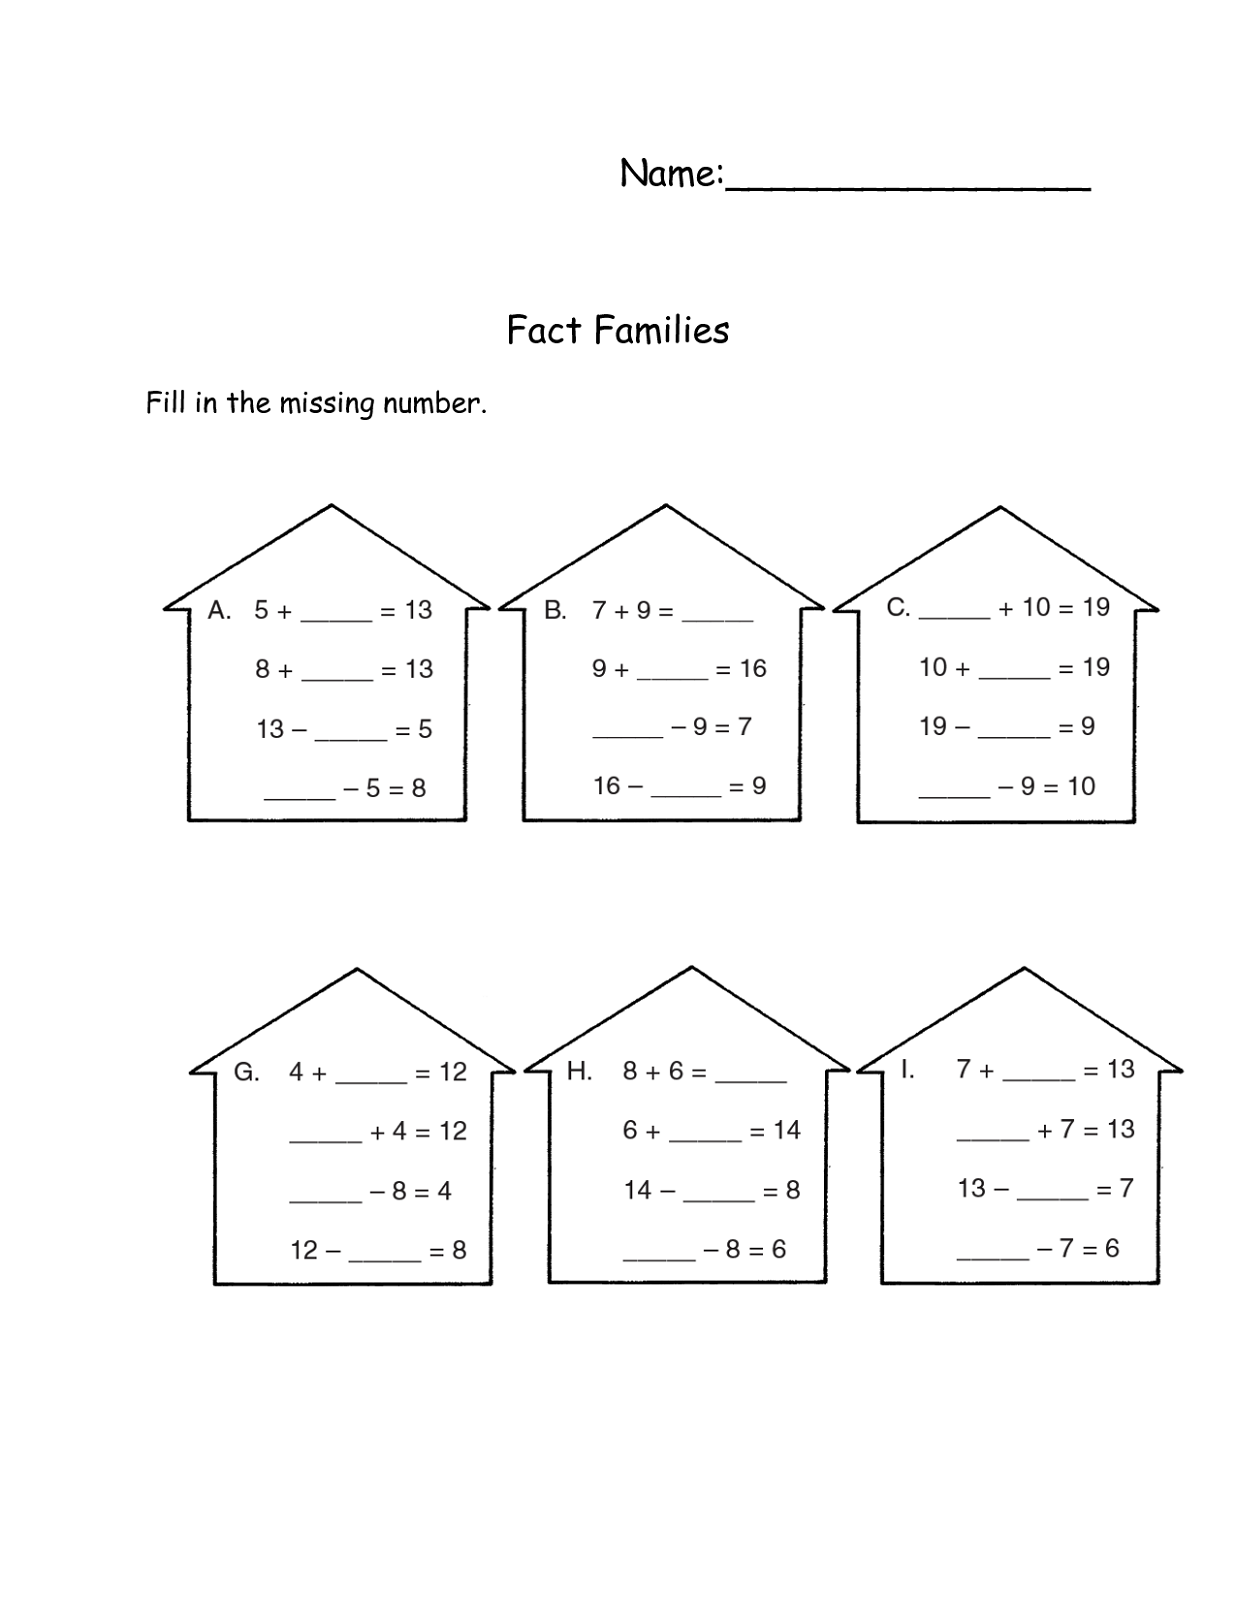 Fact Family Worksheets Printable Fact Family Worksheet Family Worksheet 1st Grade Worksheets